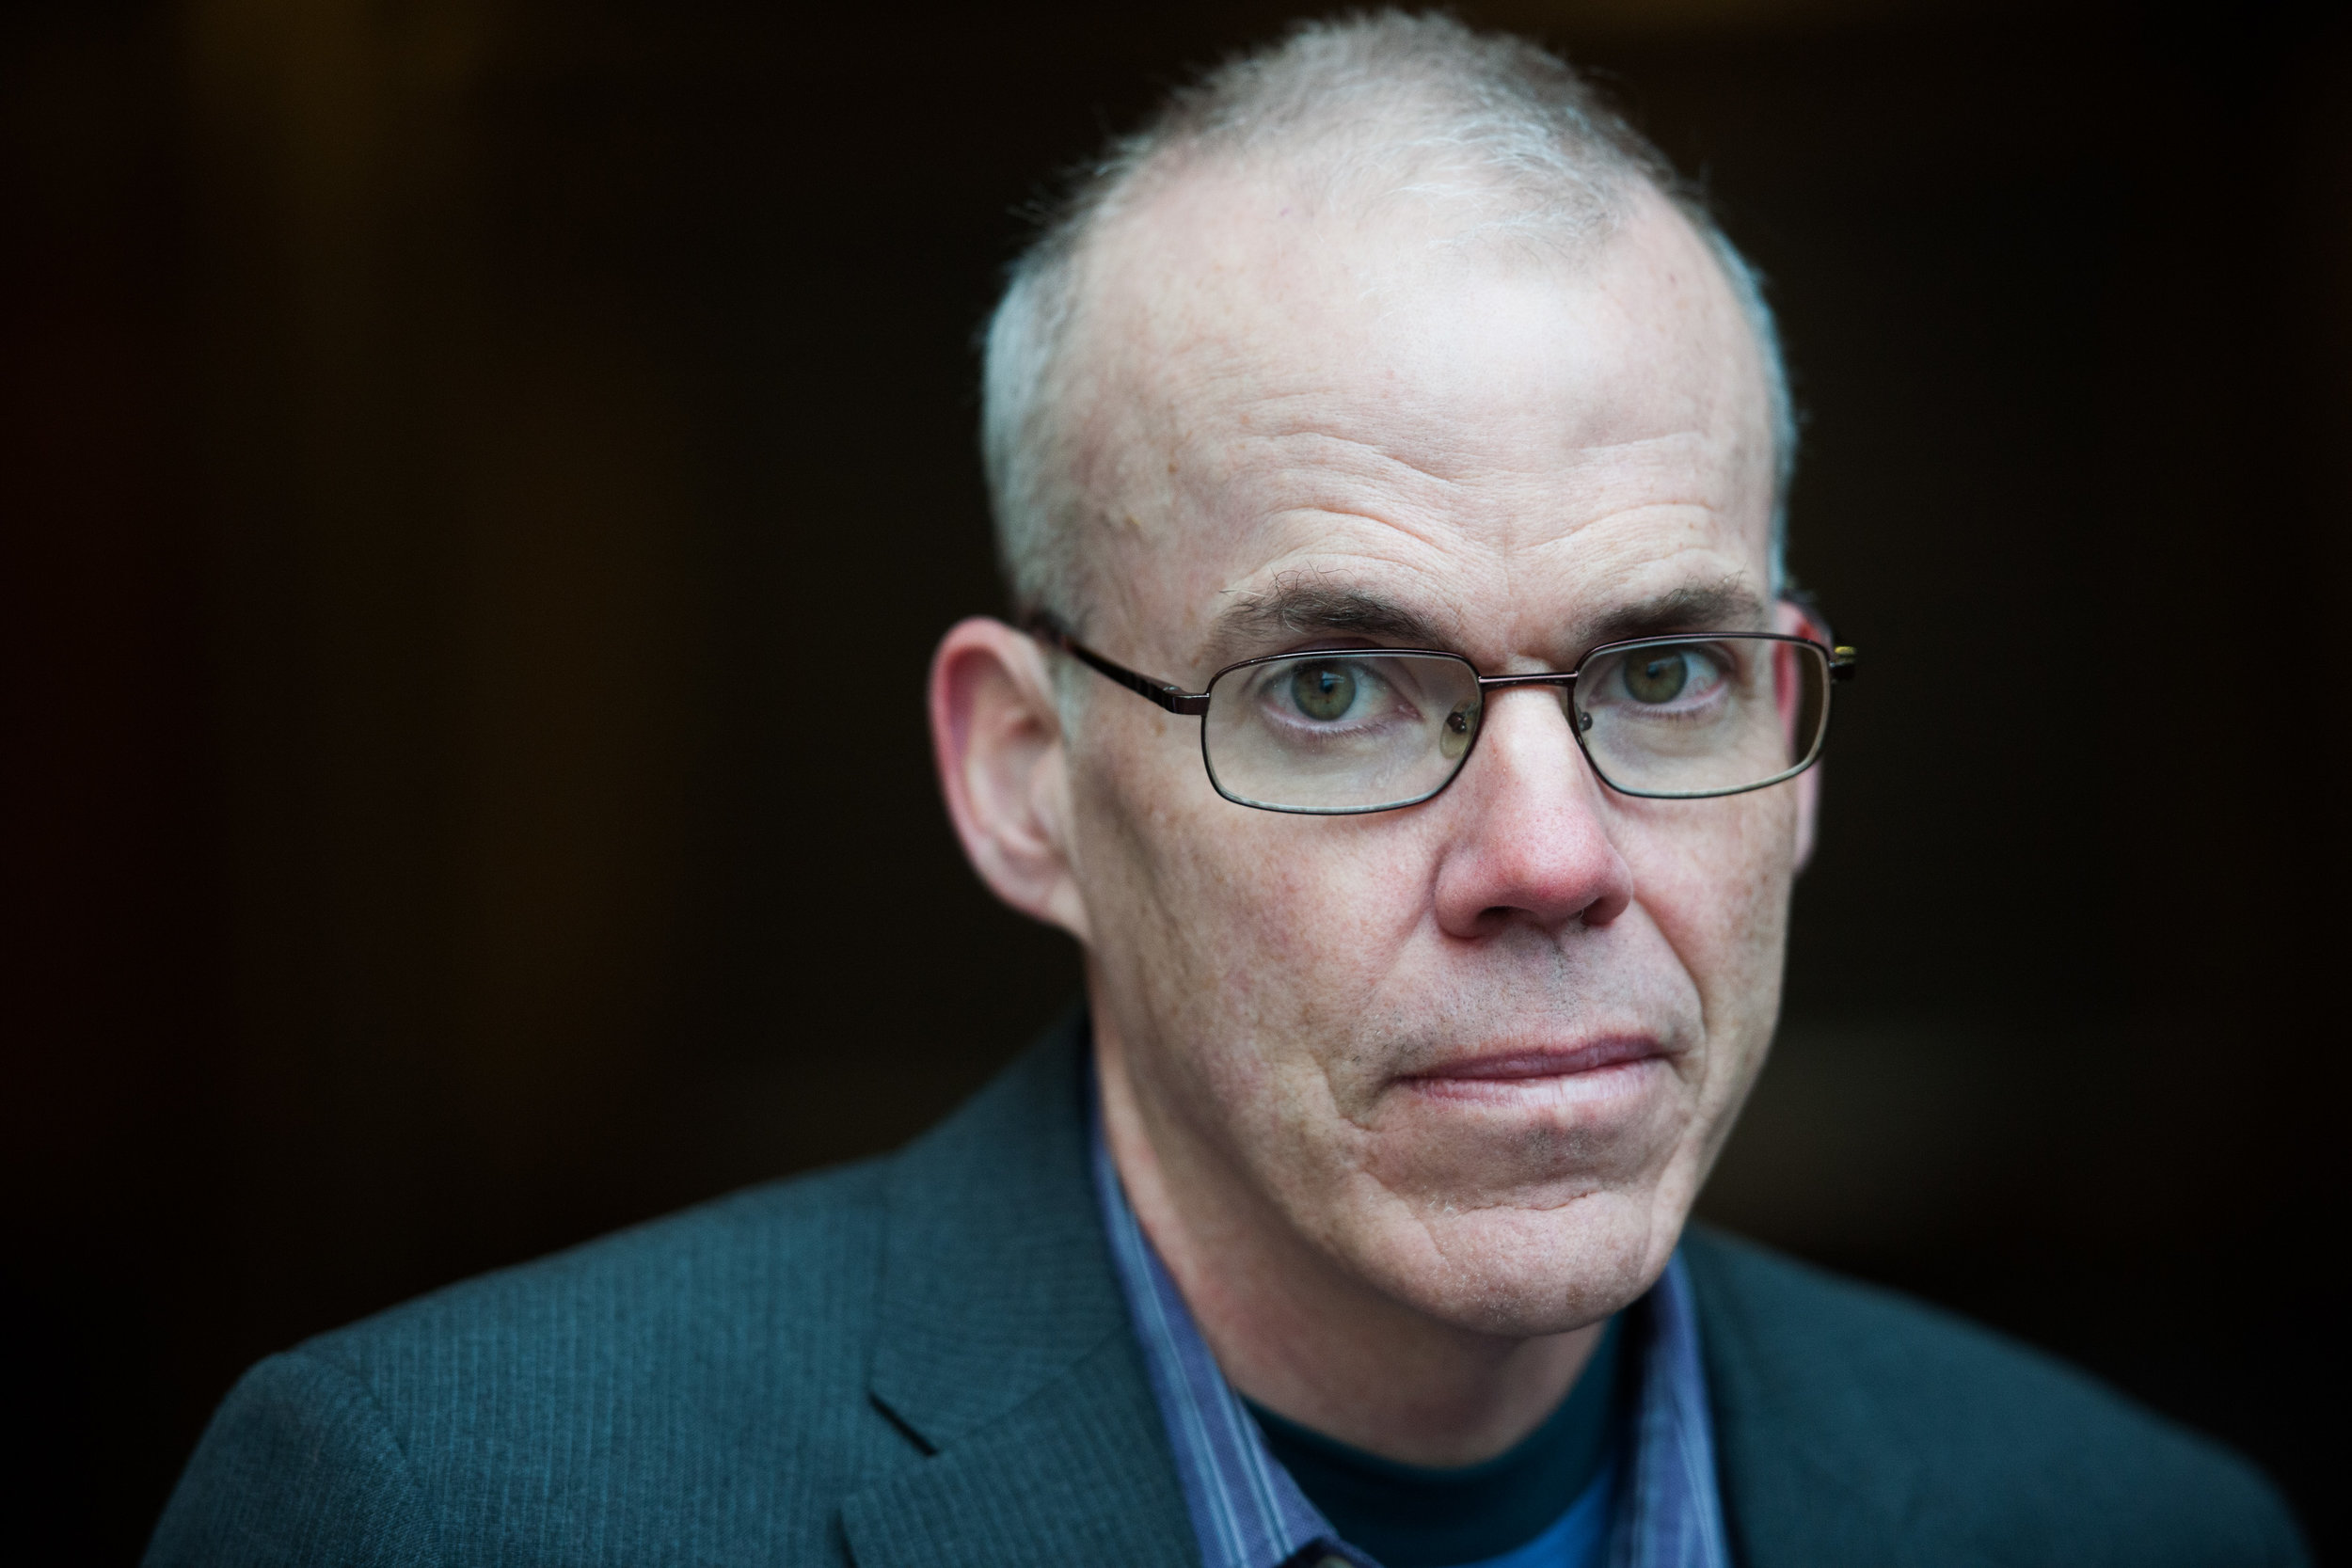 """Bill McKibben - Bill McKibben is an author and environmentalist who in 2014 was awarded the Right Livelihood Prize, sometimes called the 'alternative Nobel.' His 1989 book The End of Nature is regarded as the first book for a general audience about climate change, and has appeared in 24 languages; he's gone on to write a dozen more books. He is a former staff writer for the New Yorker; a founder of 350.org, the first planet-wide, grassroots climate change movement; and he has been heralded by The Boston Globe as """"probably America's most important environmentalist."""""""